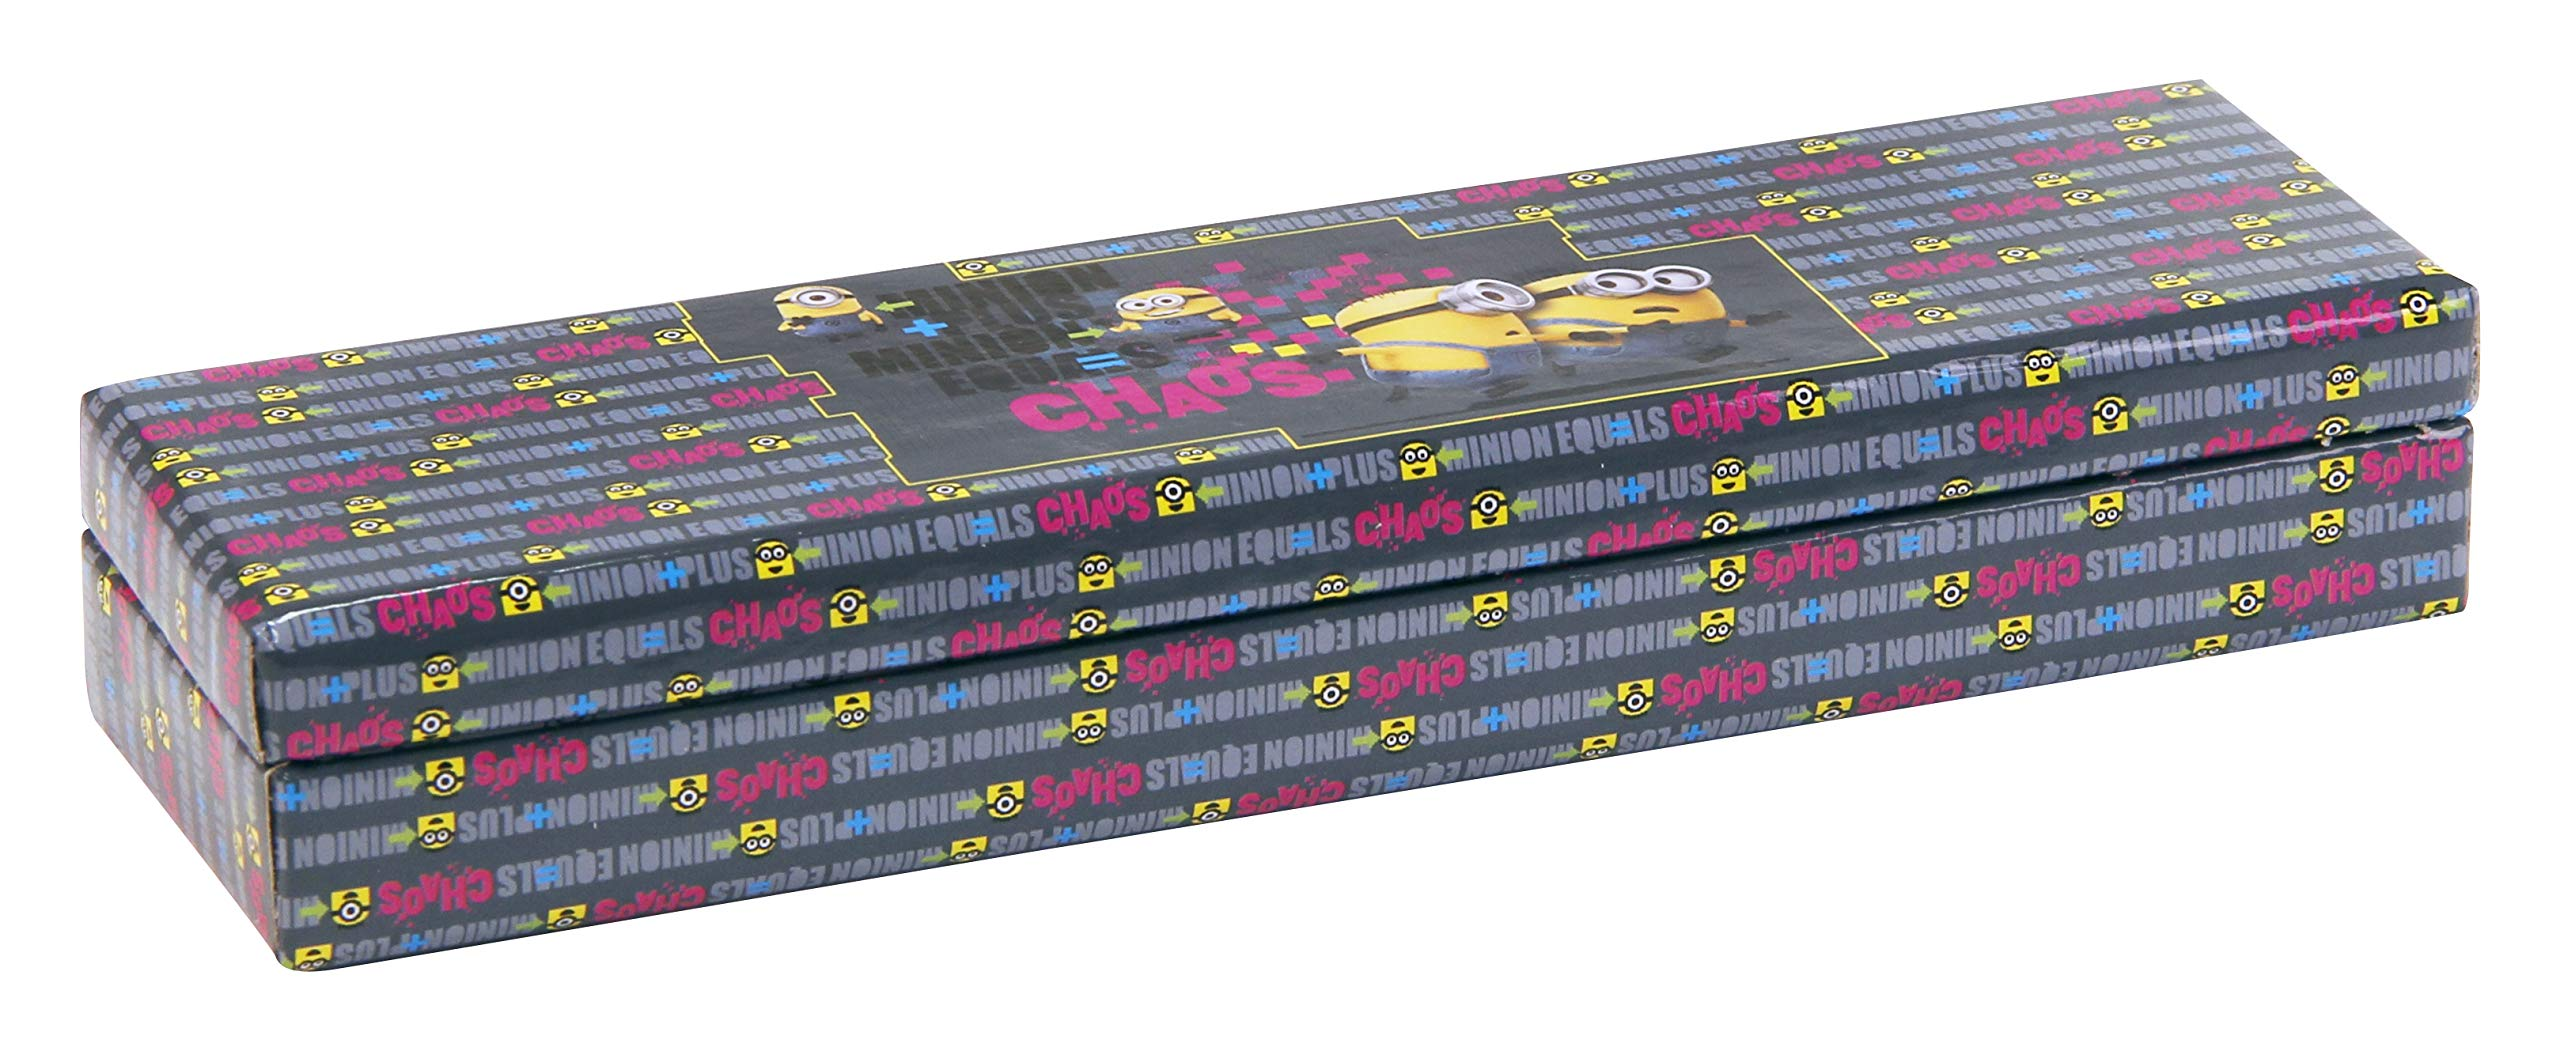 Clairefontaine 812740 C – Plumier cartón Minions tamaño 21 X 5, 5 x 3 cm Chaos